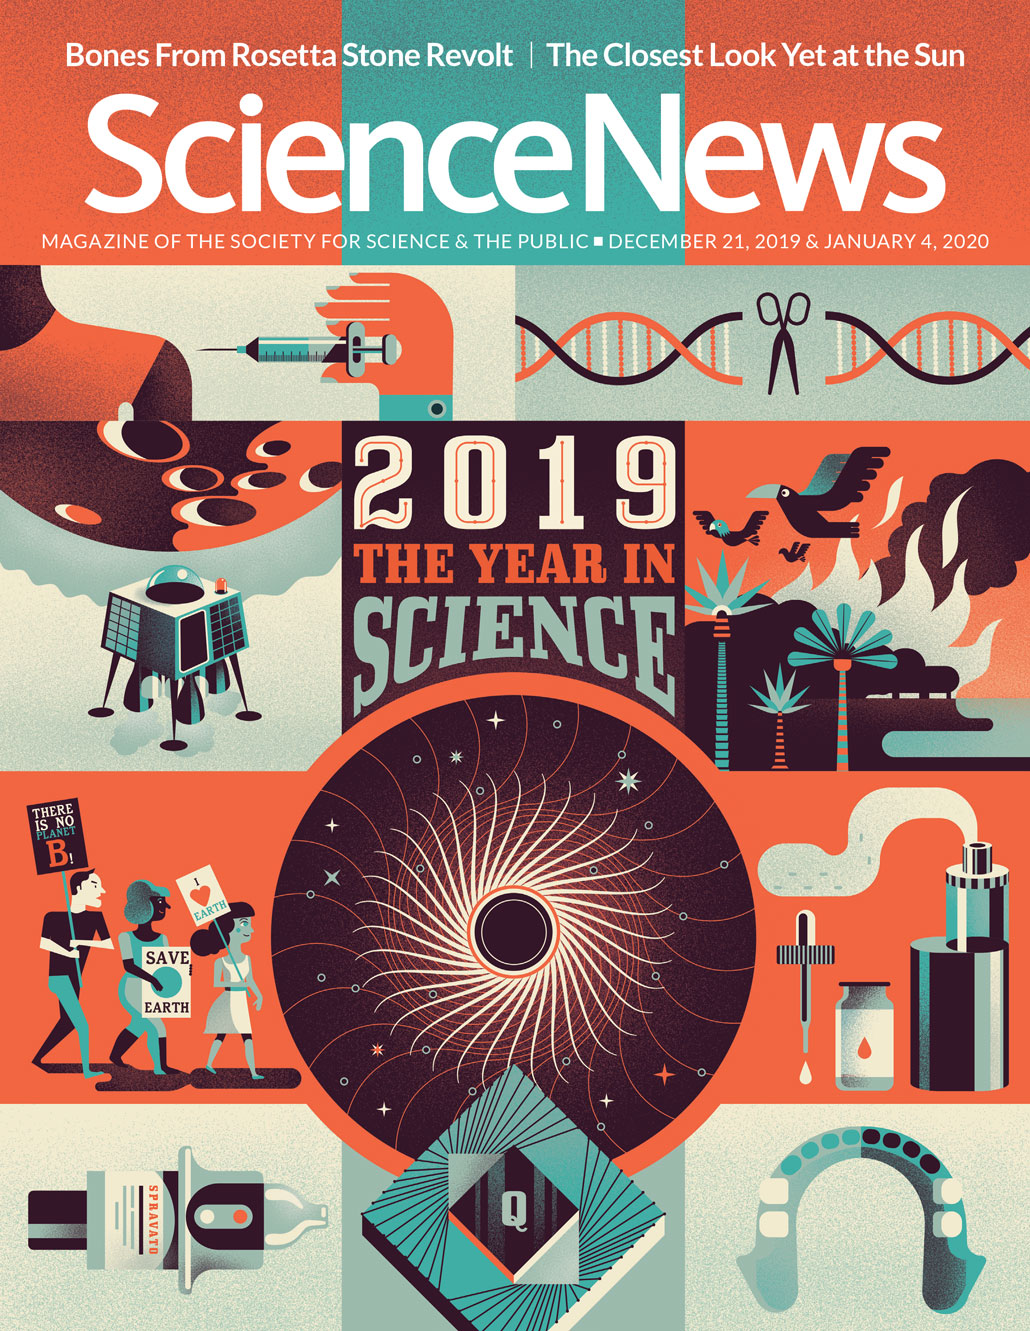 science december magazine issue newspapers magazines sciencenews january newspaper journal scientific story september stories worldofmagazine american